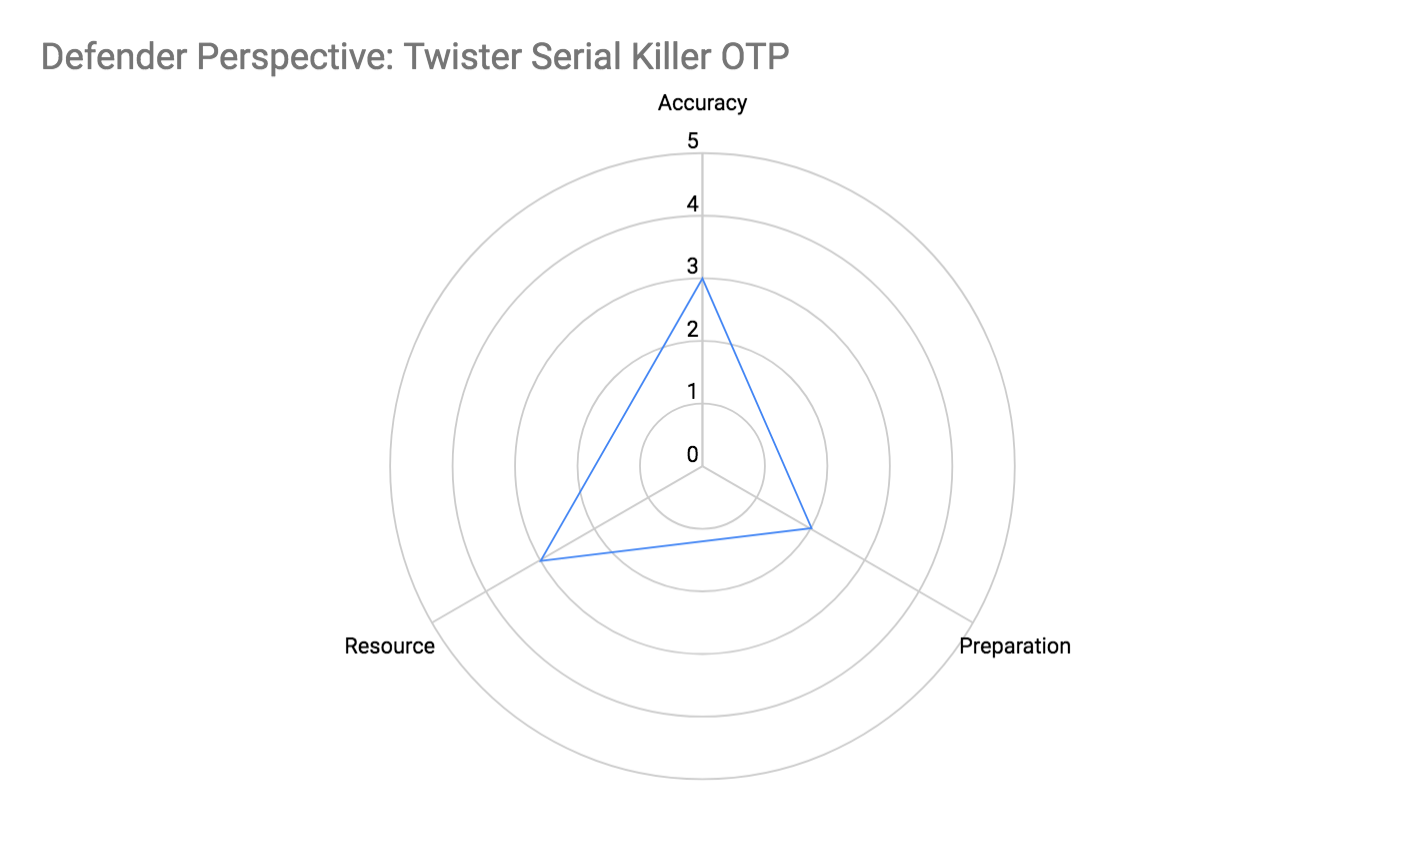 Defender Perspective: Twisted Serial Killer OTP Attributes